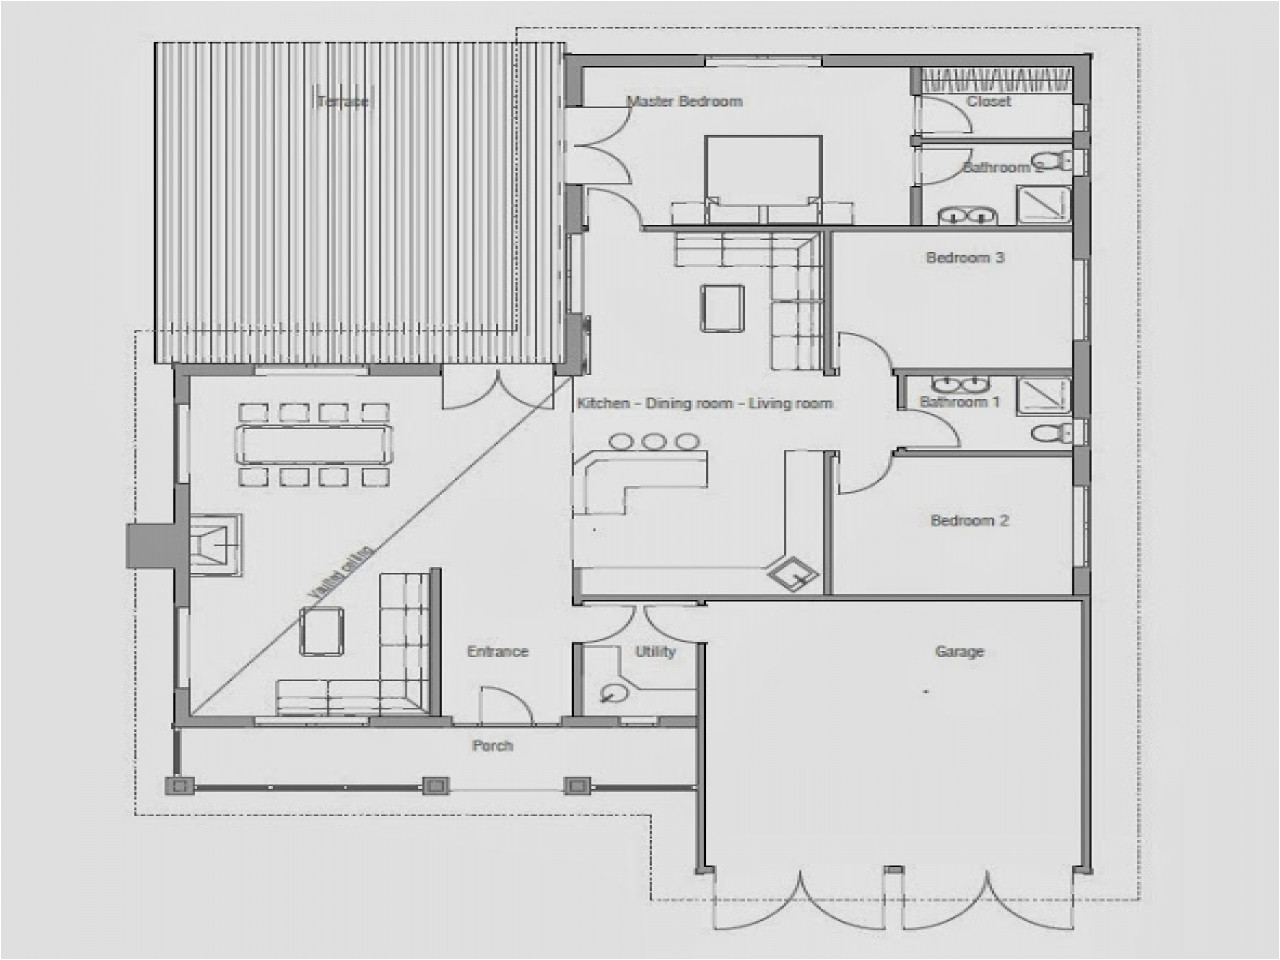 7 bedroom house plans australia